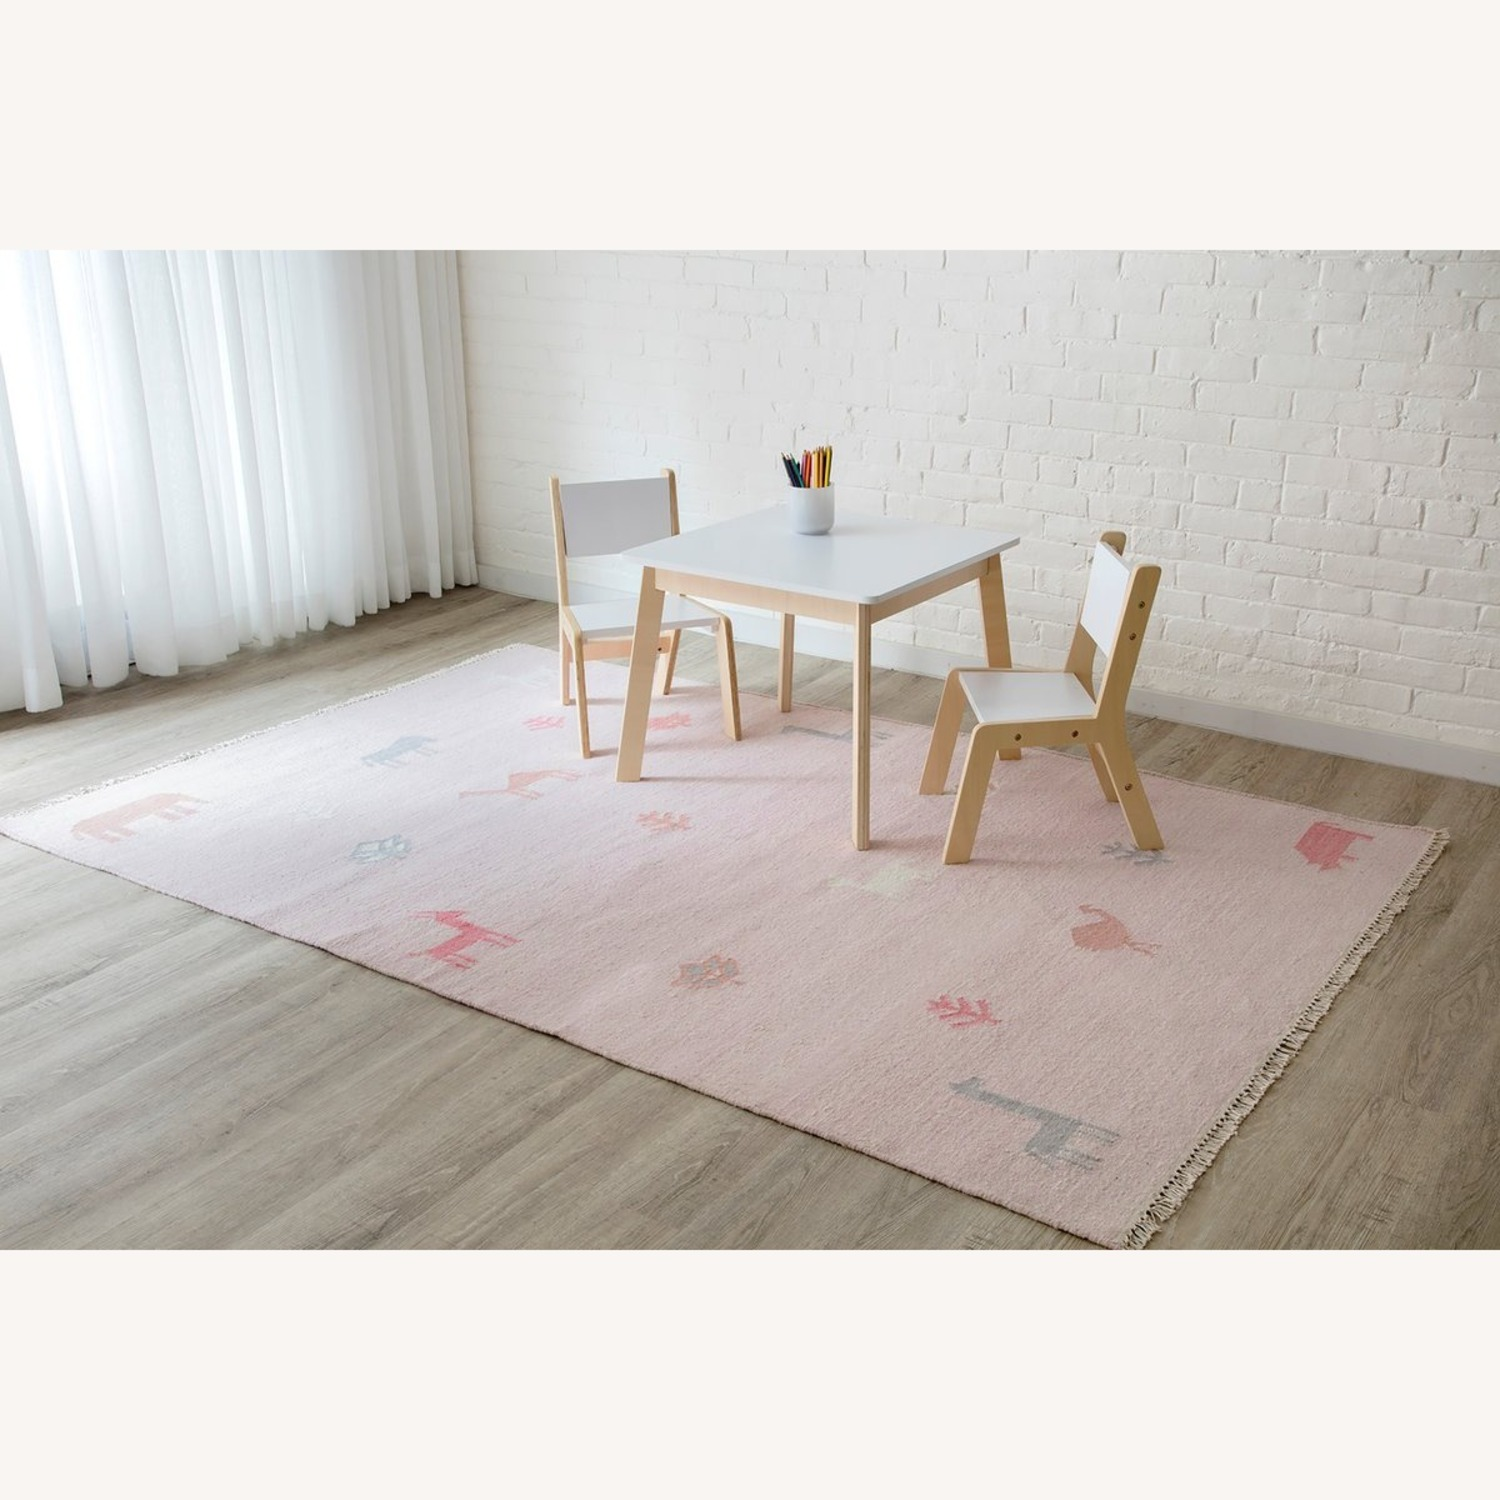 Macy's Pink Wool Handwoven Rug with Animals - image-2